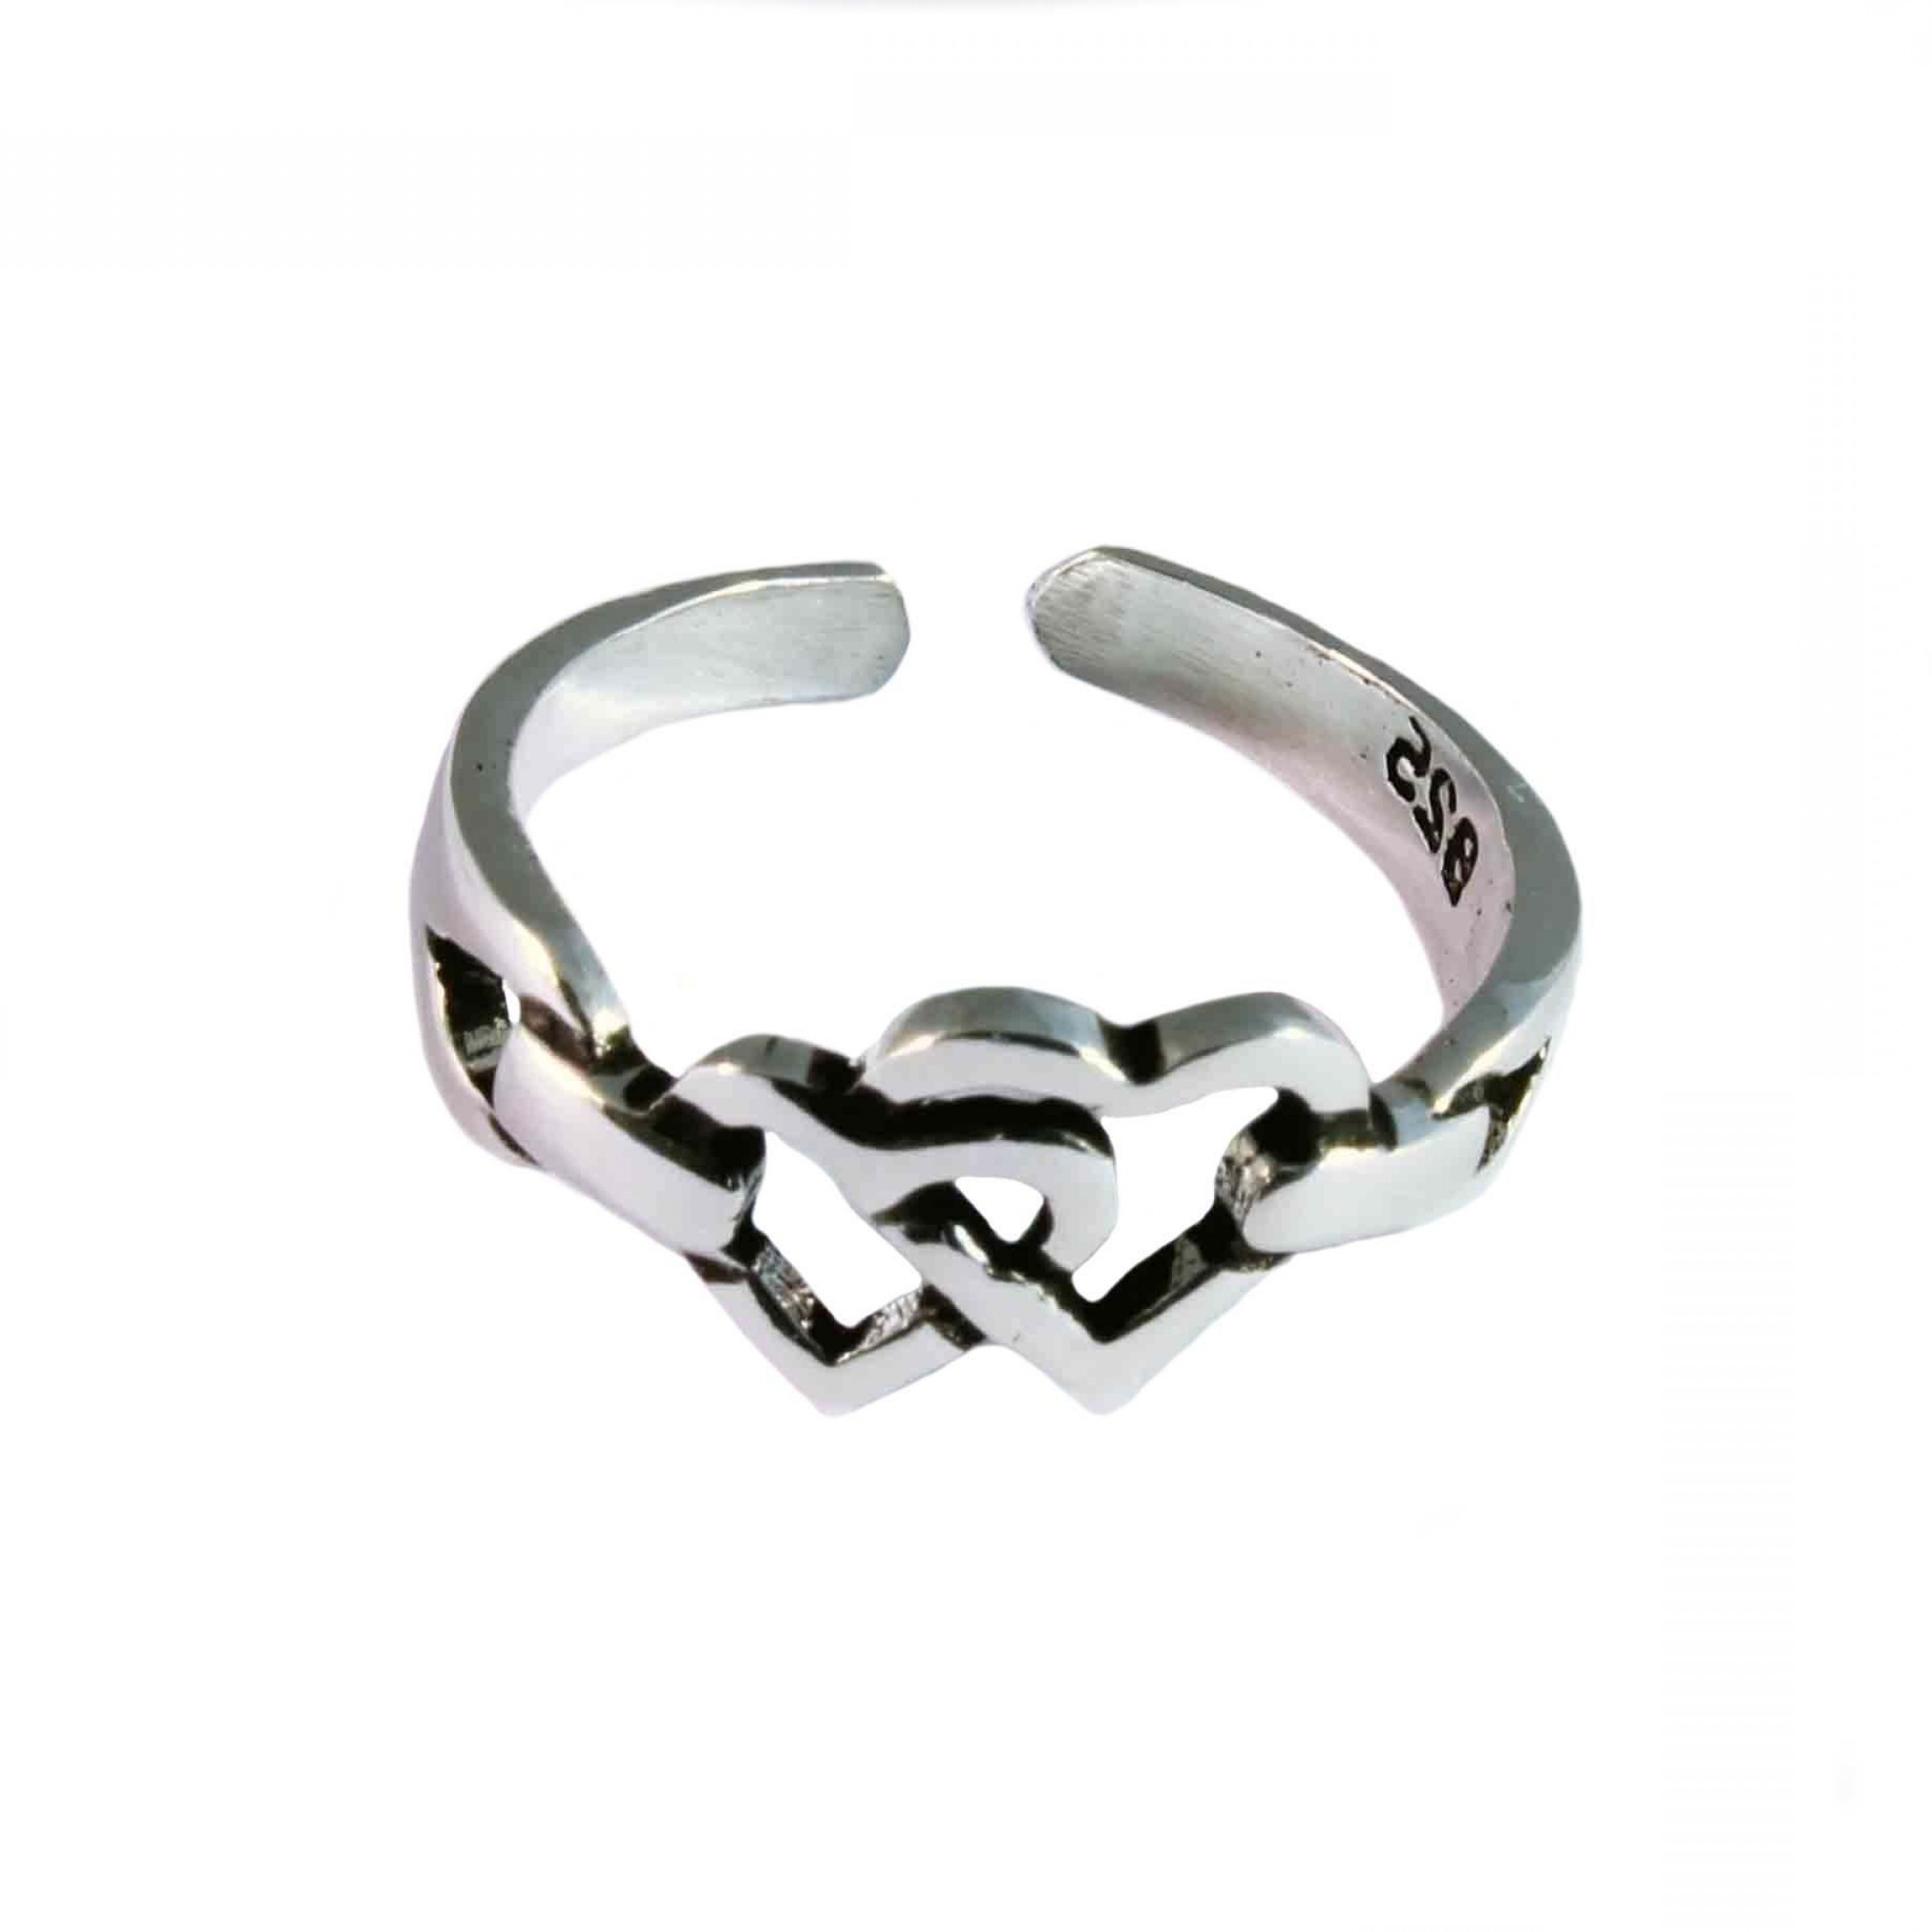 Sterling Silver Toe Ring Entwined Hearts Design P | Ksvhs Jewellery Throughout Recent Sterling Silver Fitted Toe Rings (View 10 of 15)